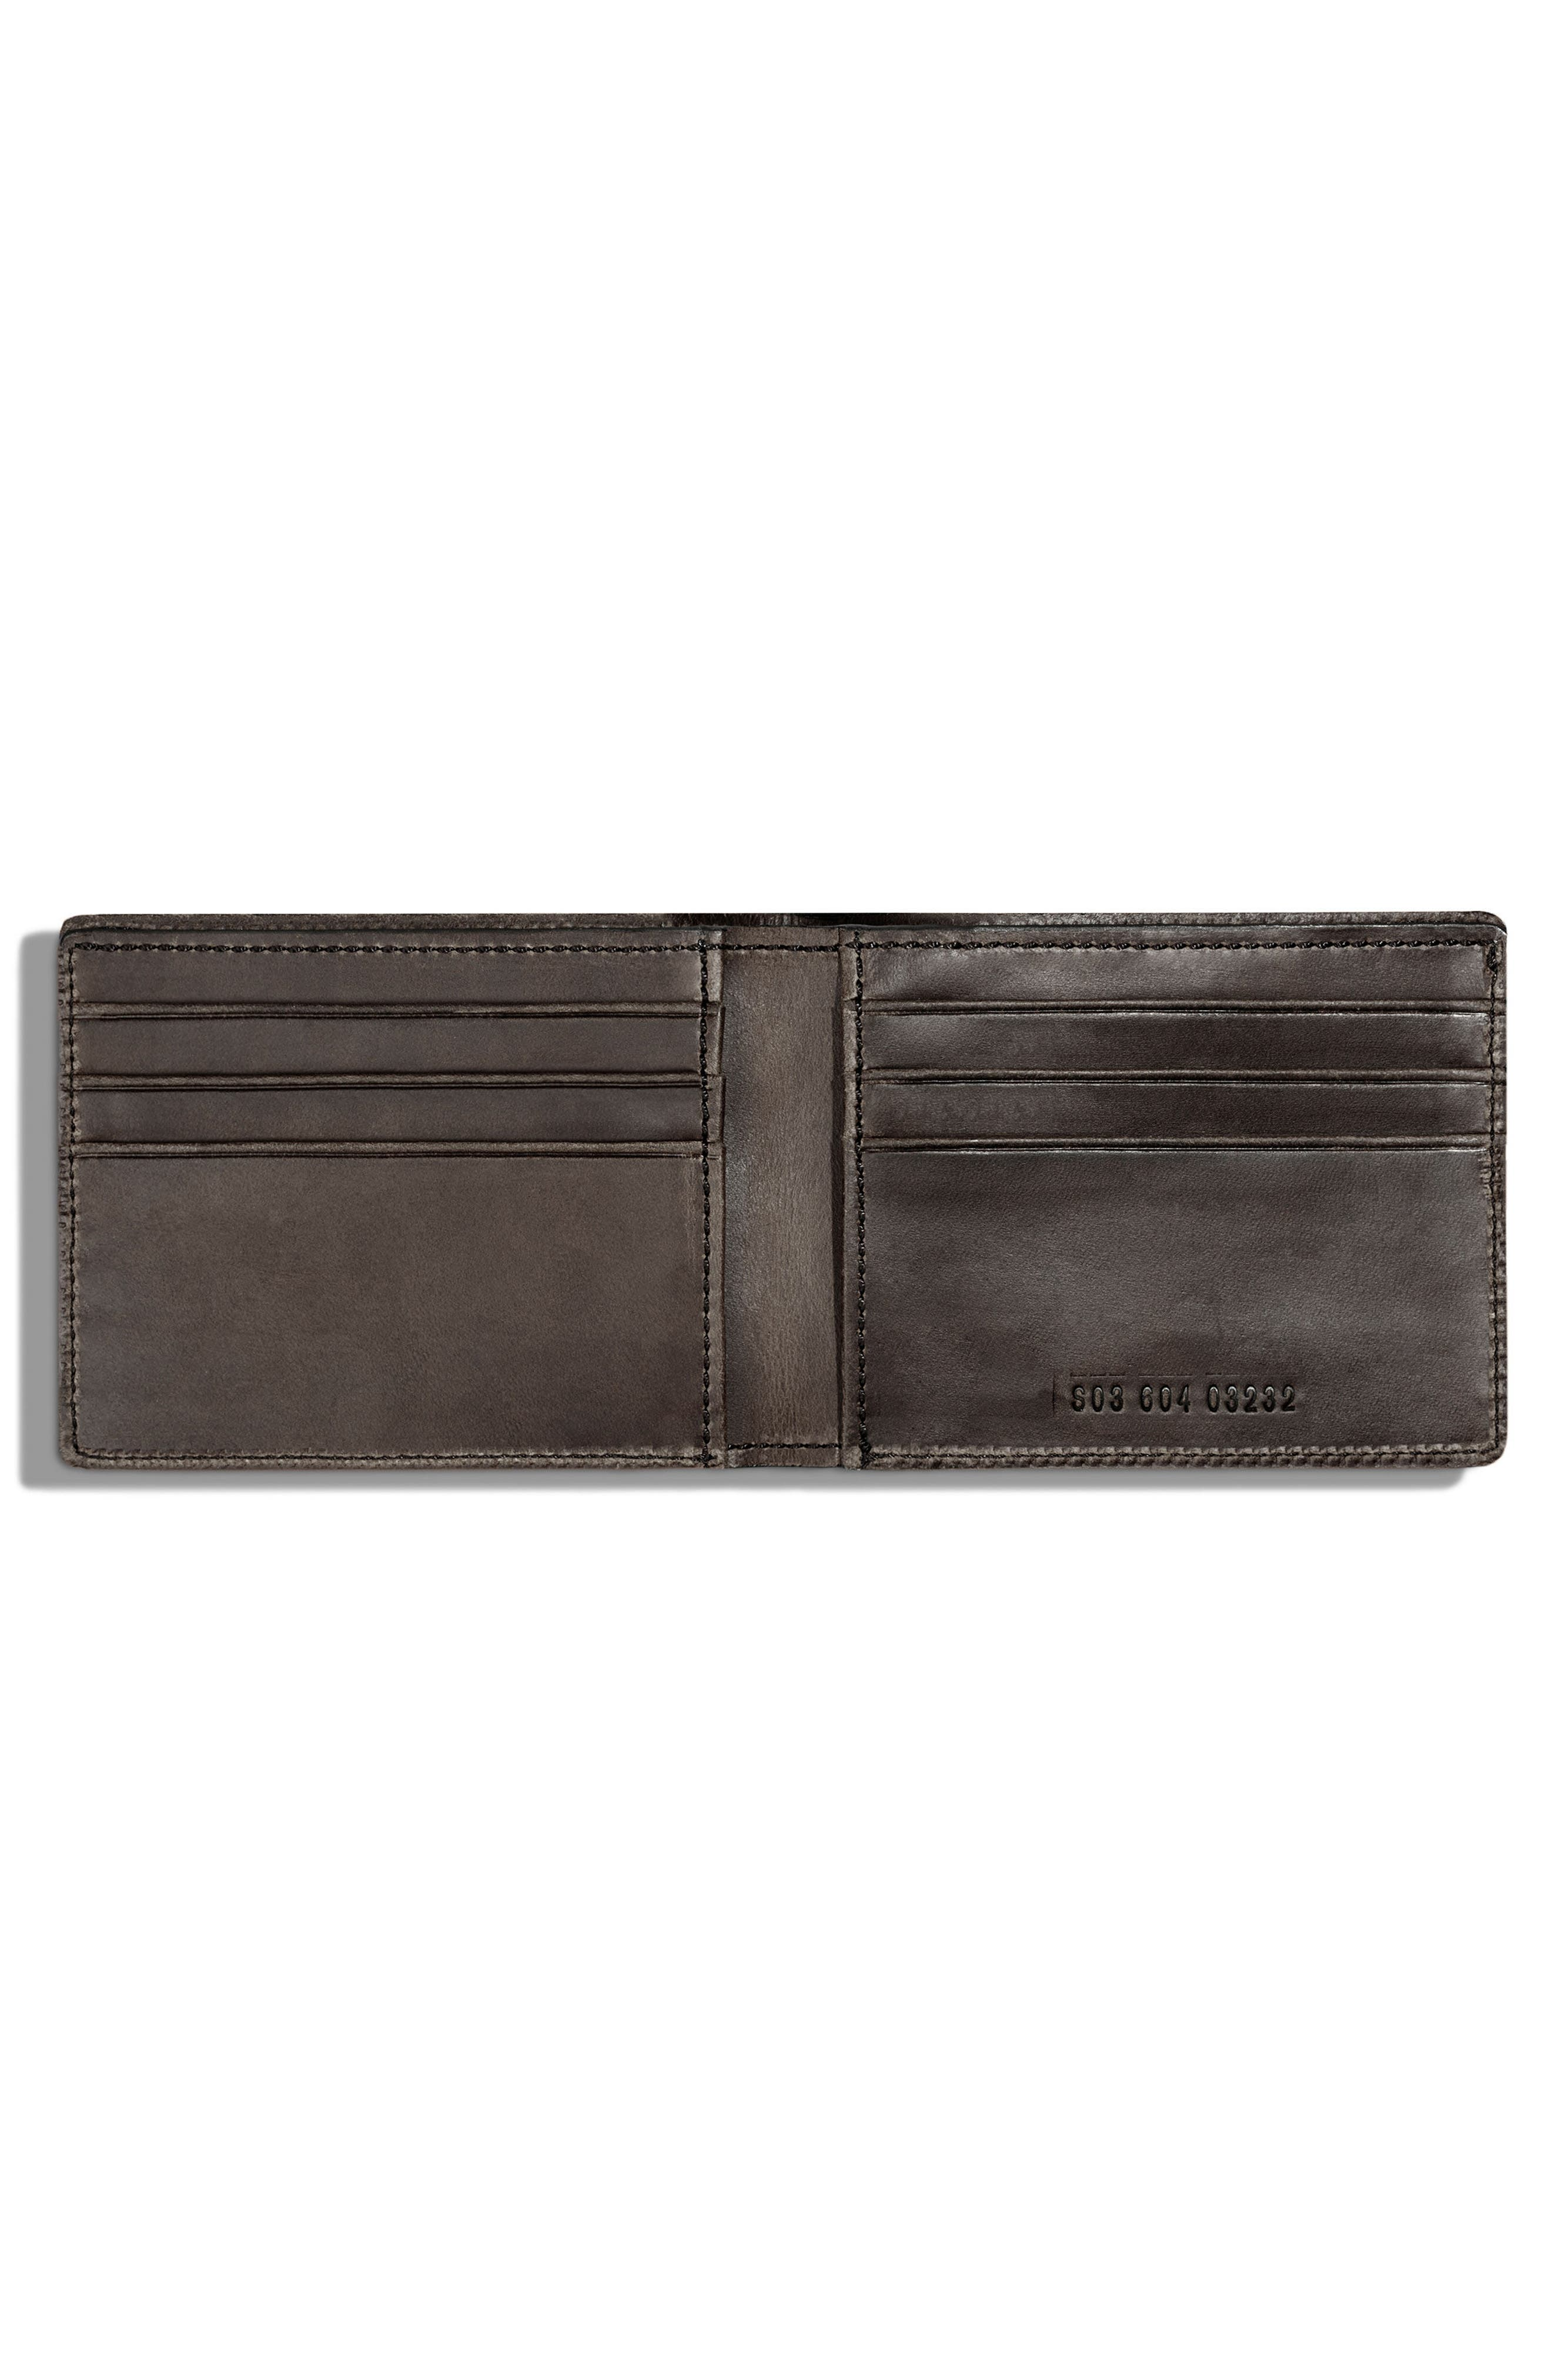 Leather Wallet,                             Alternate thumbnail 2, color,                             Charcoal